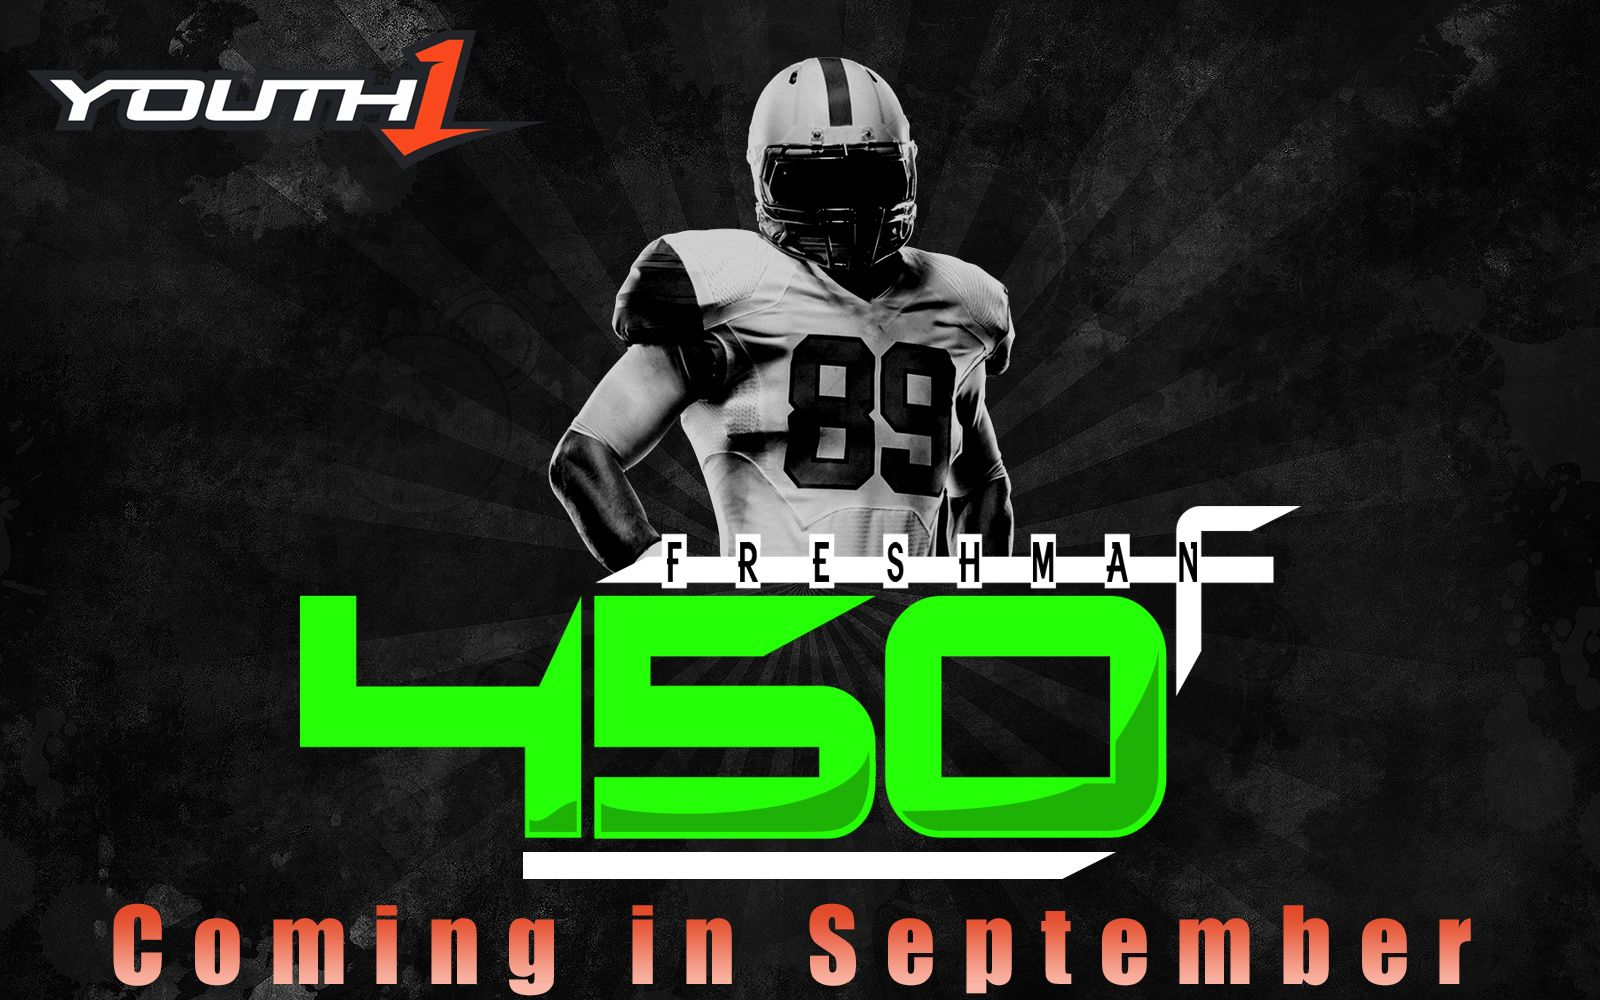 Announcement: Youth1's annual football rankings will be released this month!